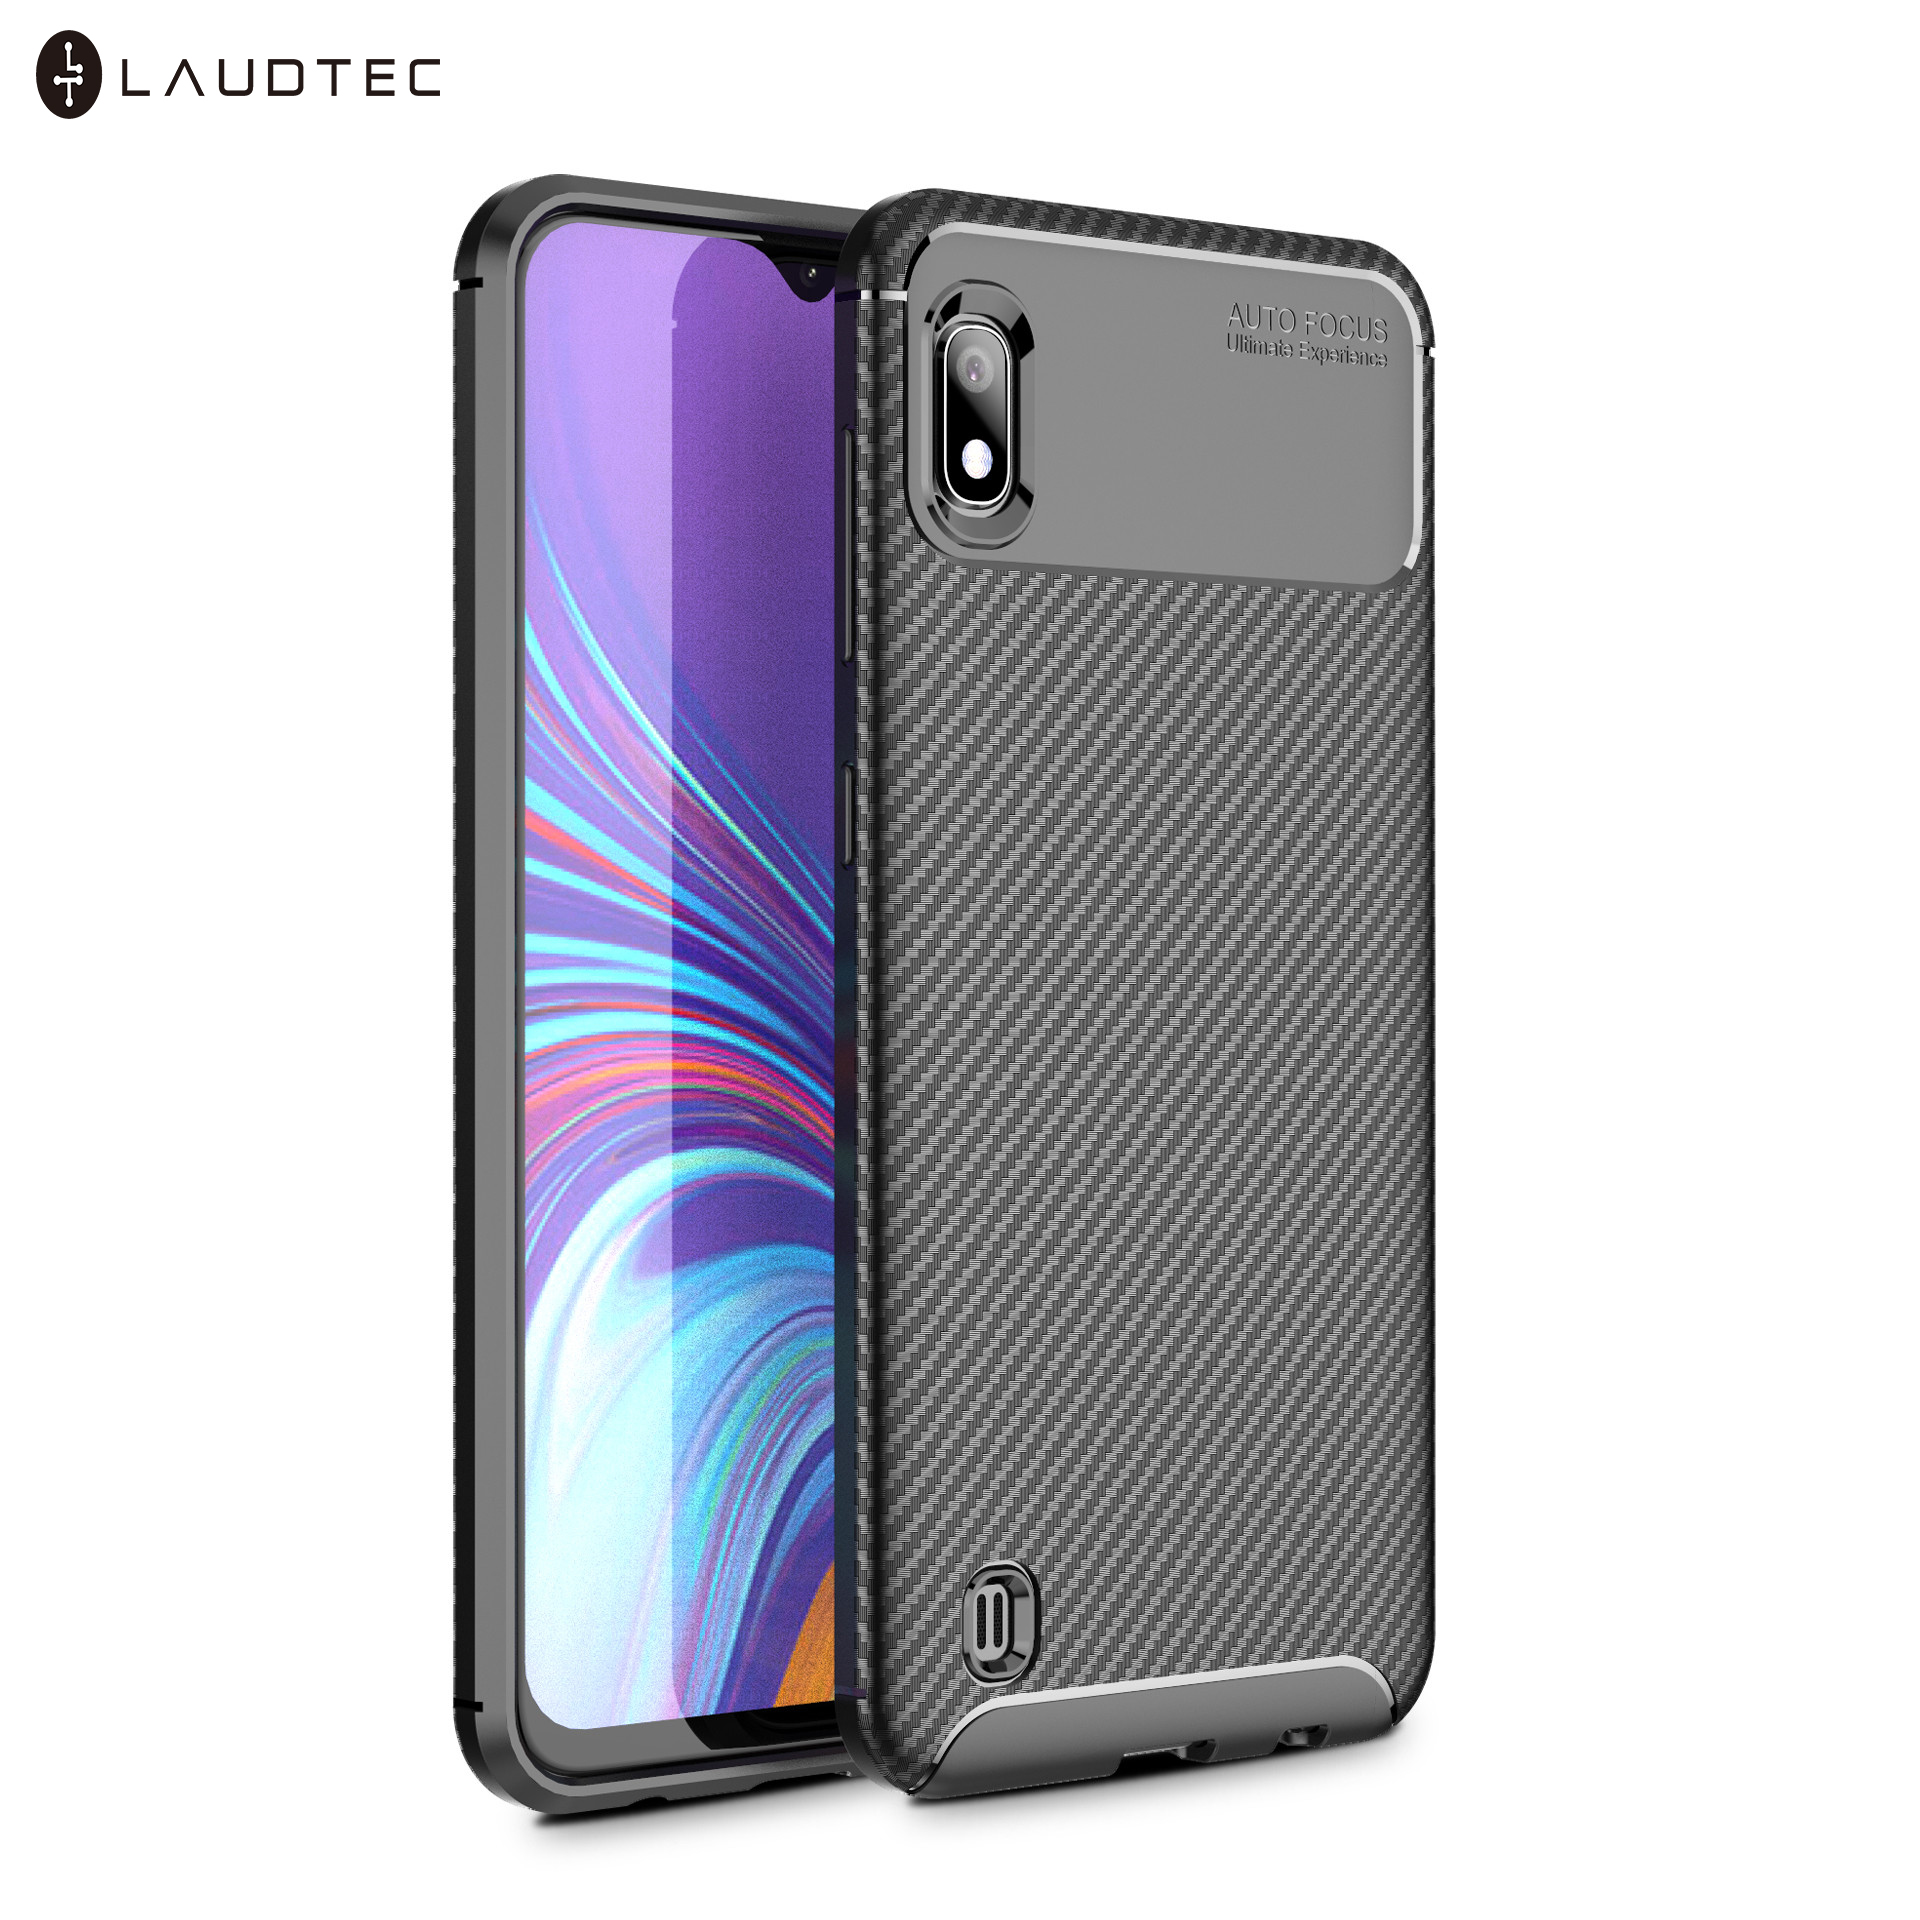 Laudtec New Carbon Fiber Soft Tpu Back Cover Phone Case For Samsung Galaxy <strong>A10</strong>